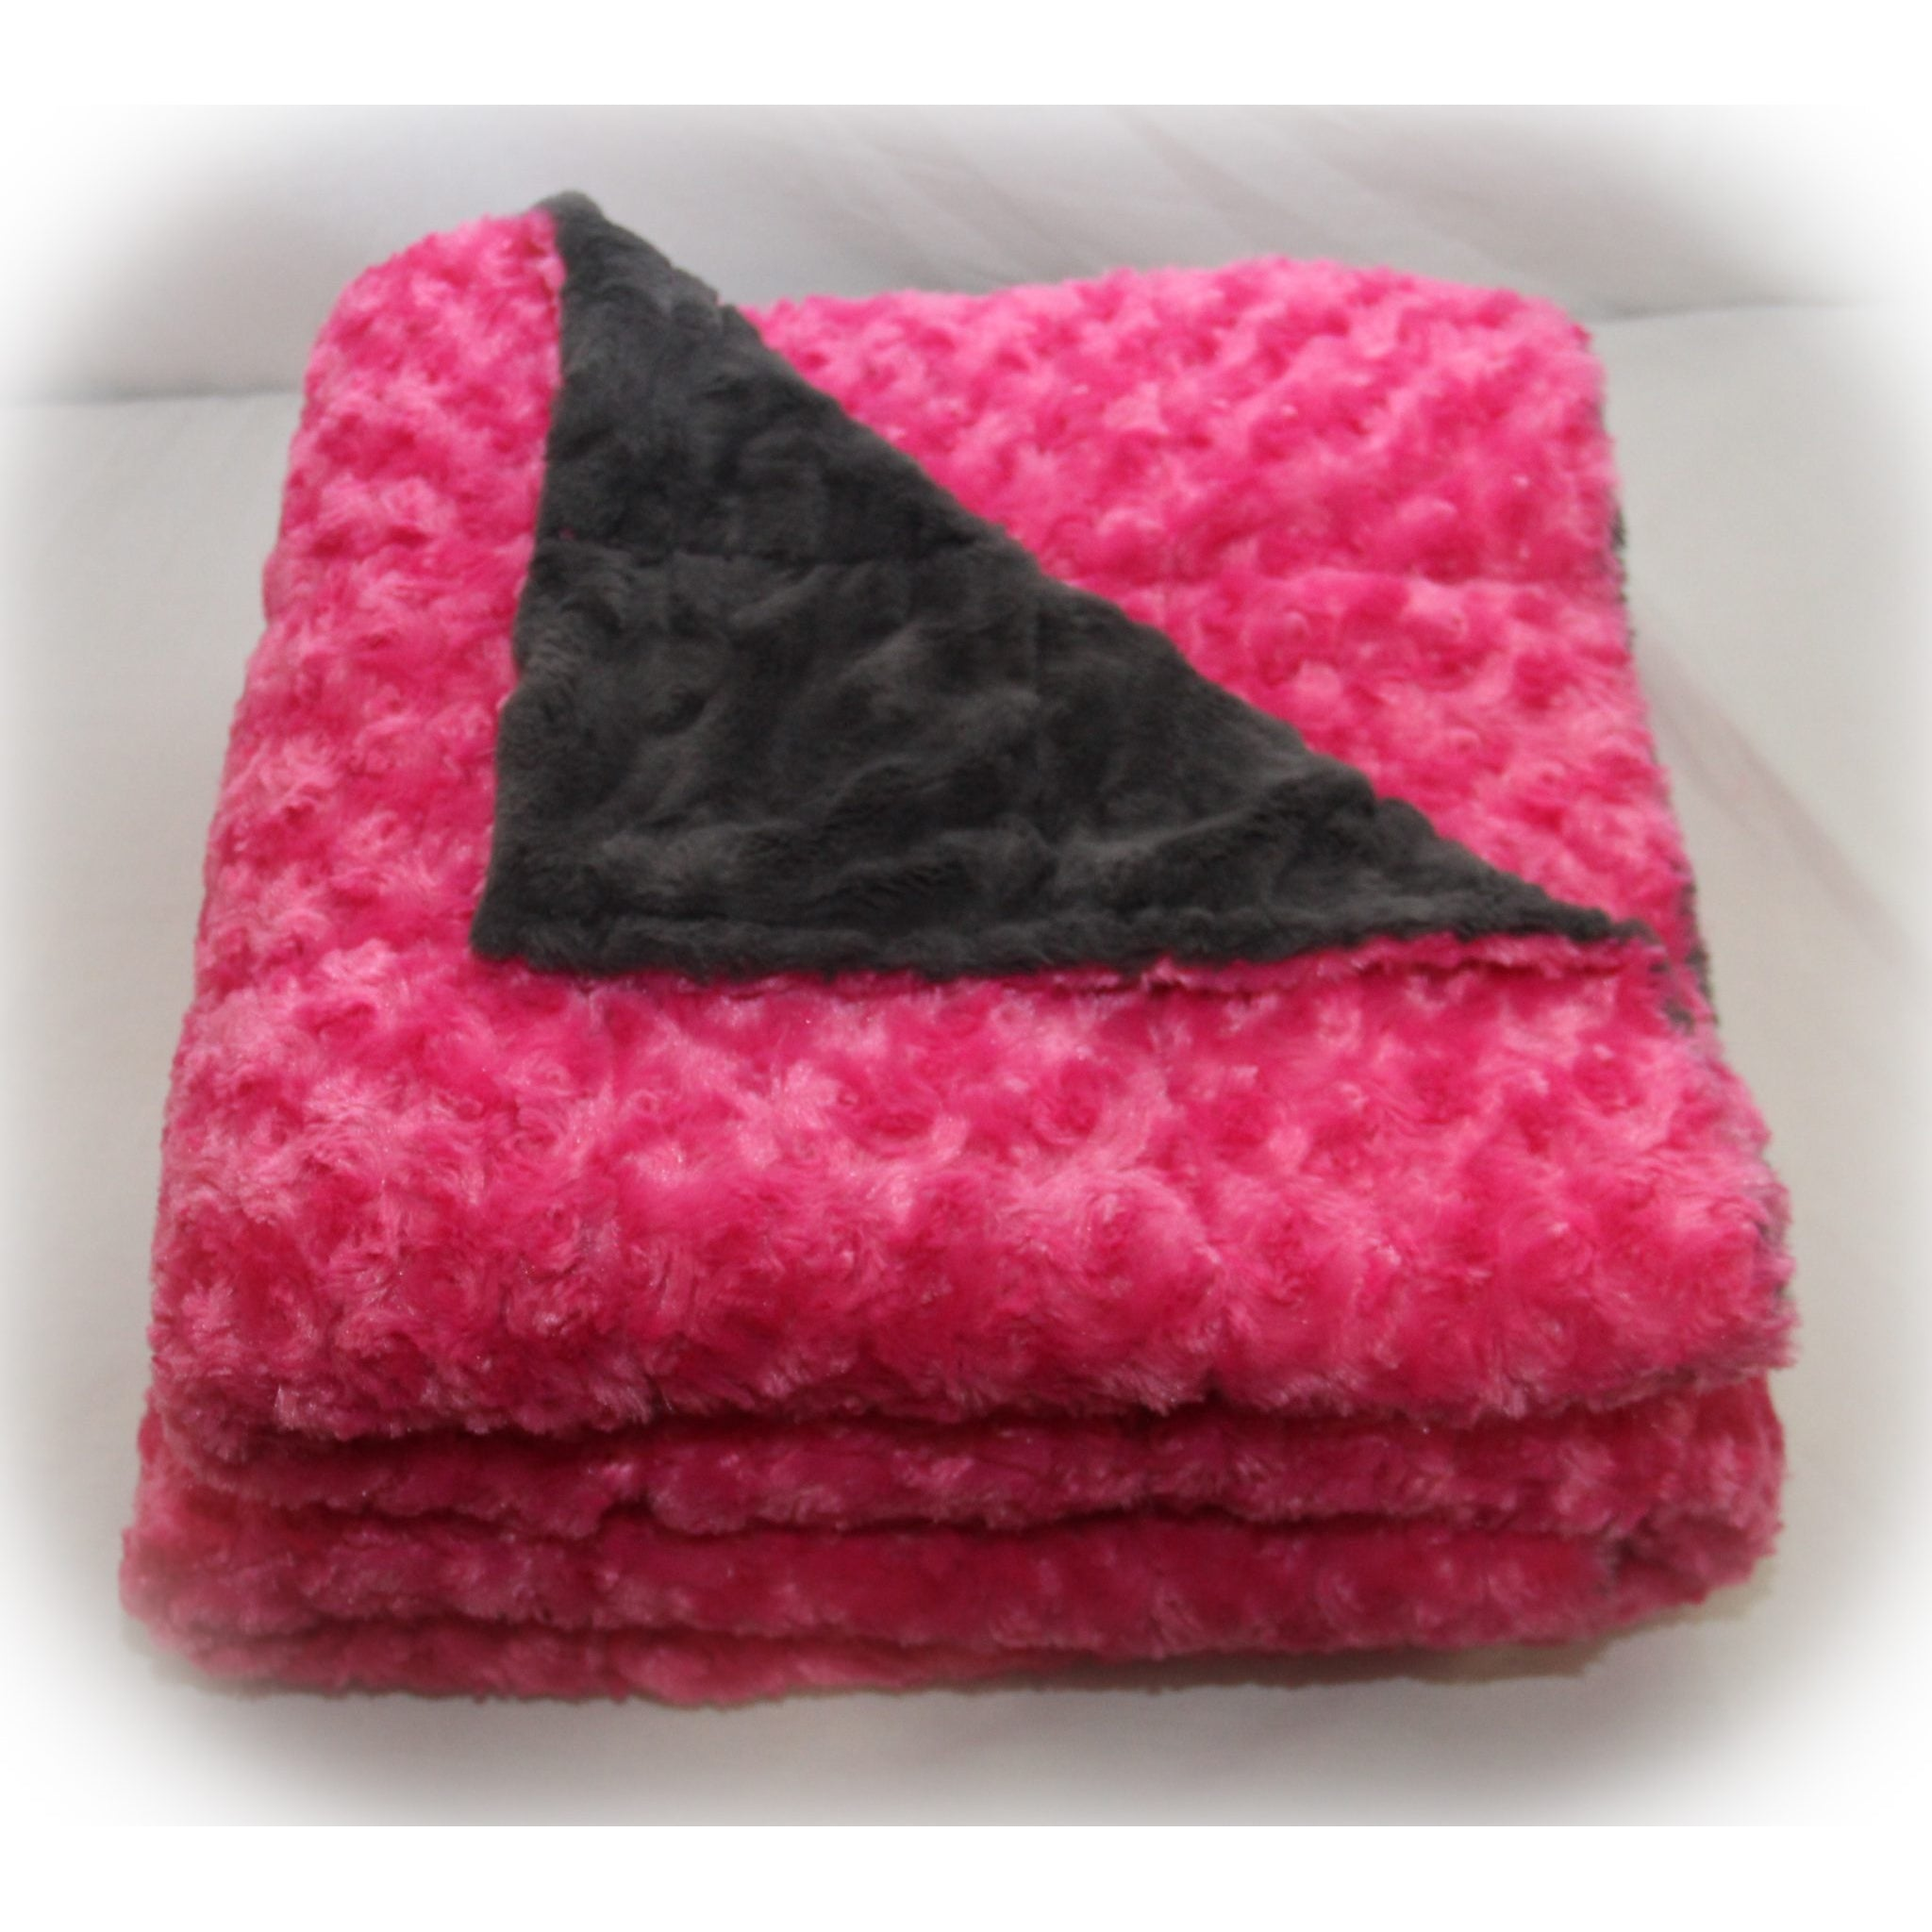 Minky Weighted Blanket 15 35 Lbs Queen Hot Pink Soothing Weight